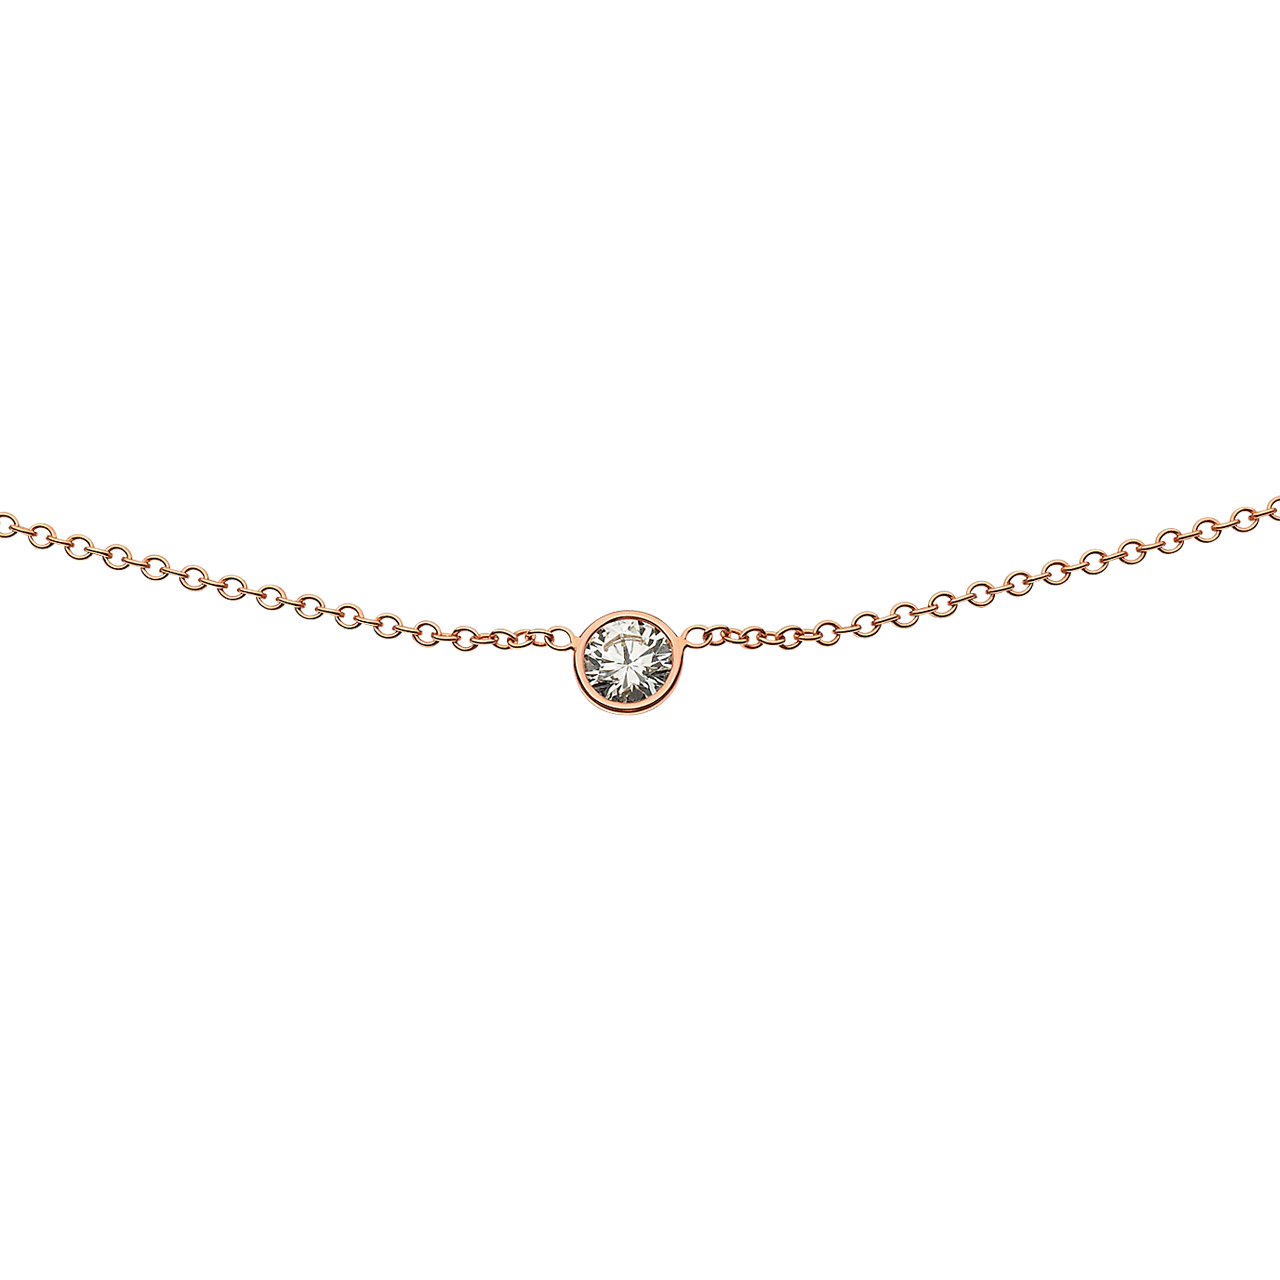 Forevermark 18k rose gold and diamond pendant 1295 wishlist forevermark 18k rose gold and diamond pendant 1295 mozeypictures Gallery